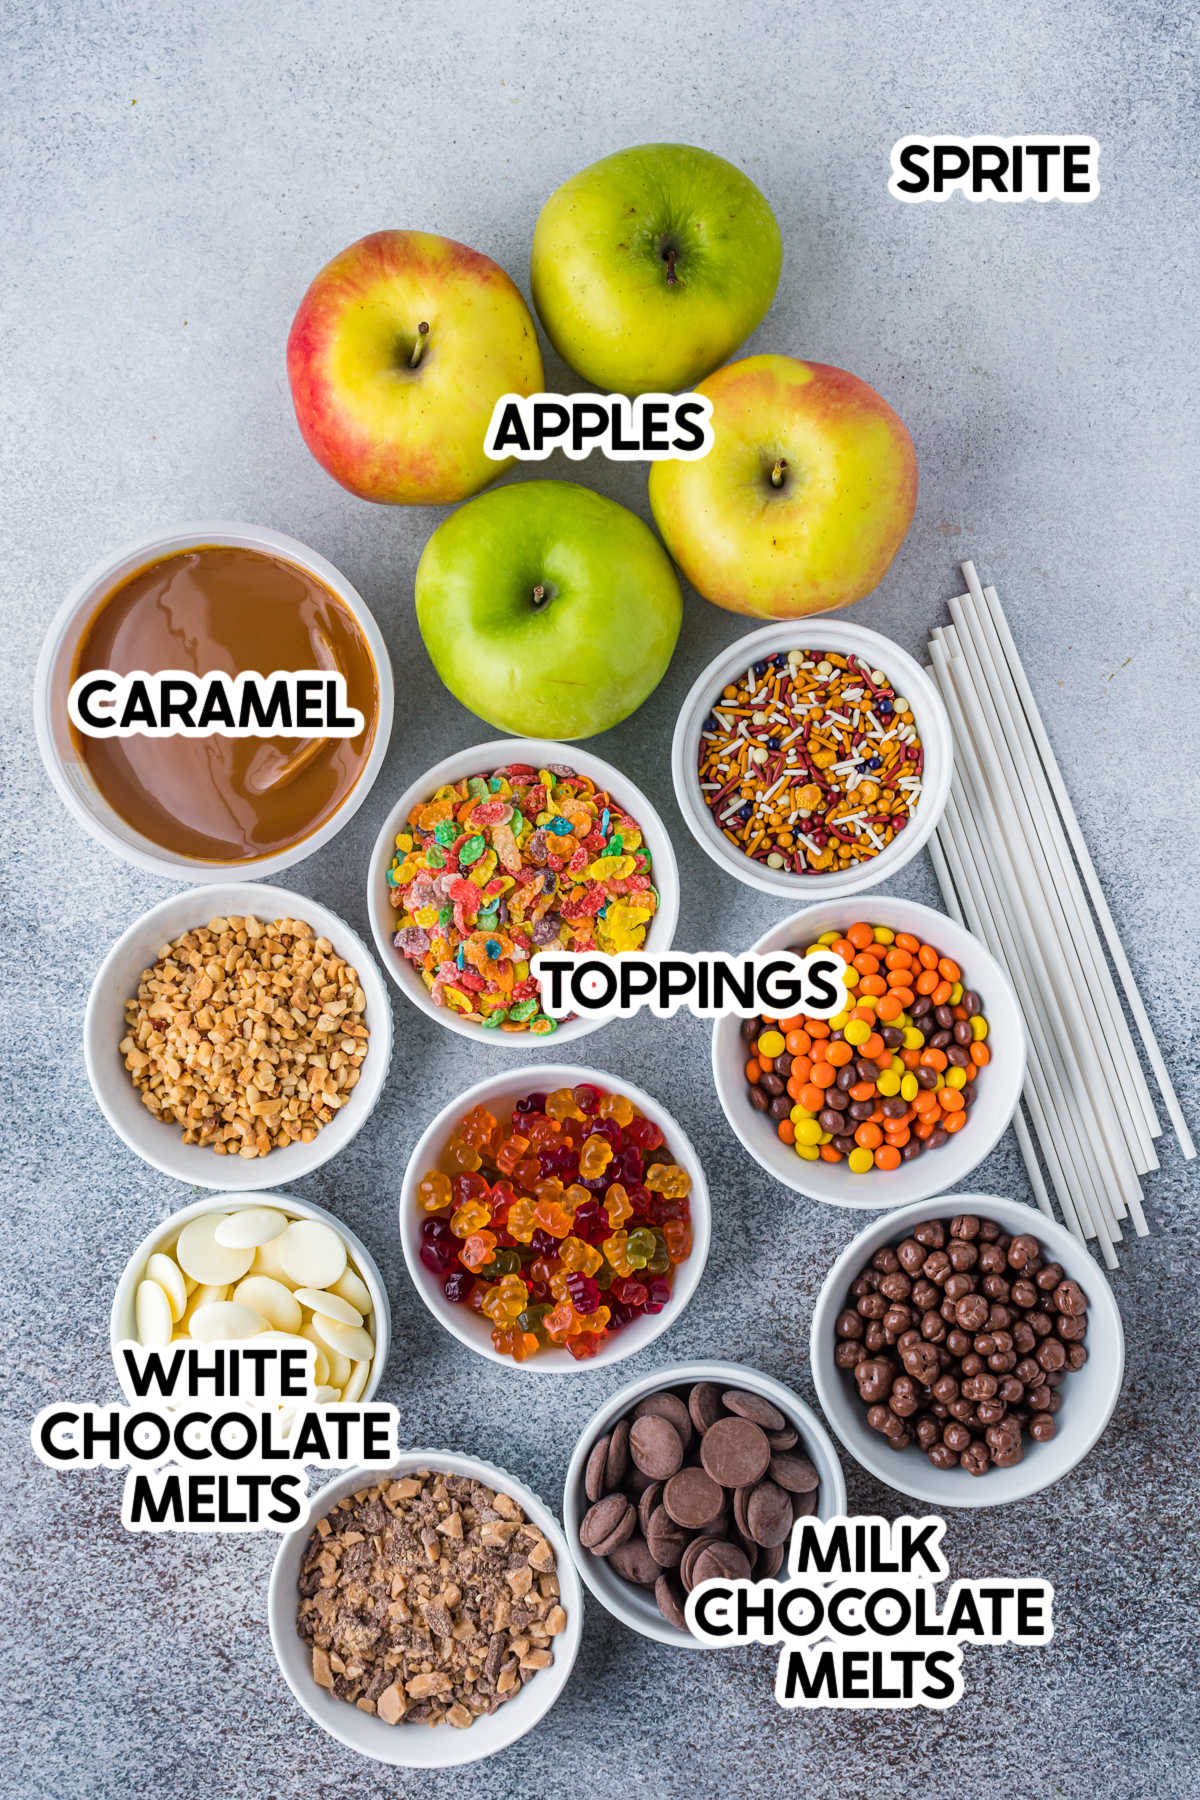 caramel apple board ingredients with labels